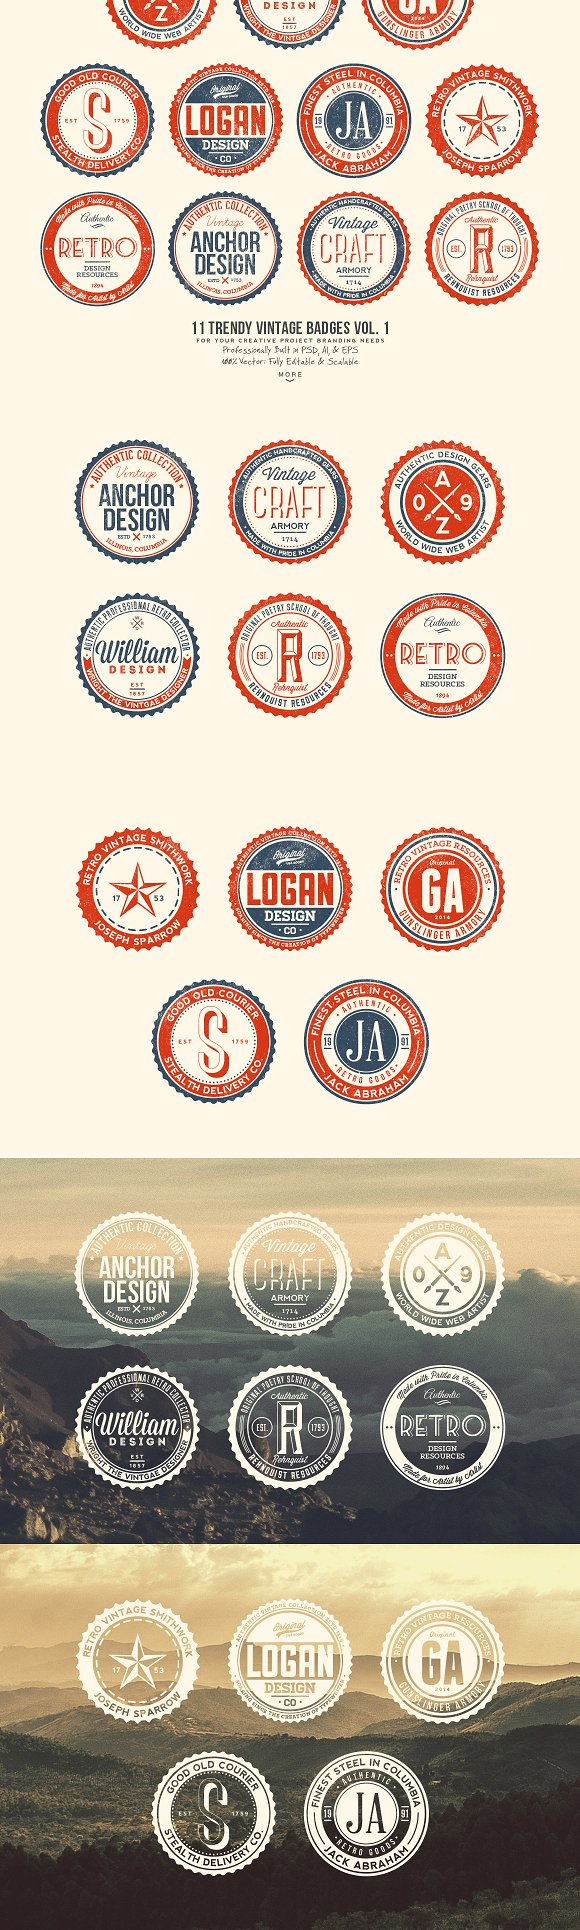 33 Trendy Vintage Badges Bundle Pack in Logo Templates - product preview 1